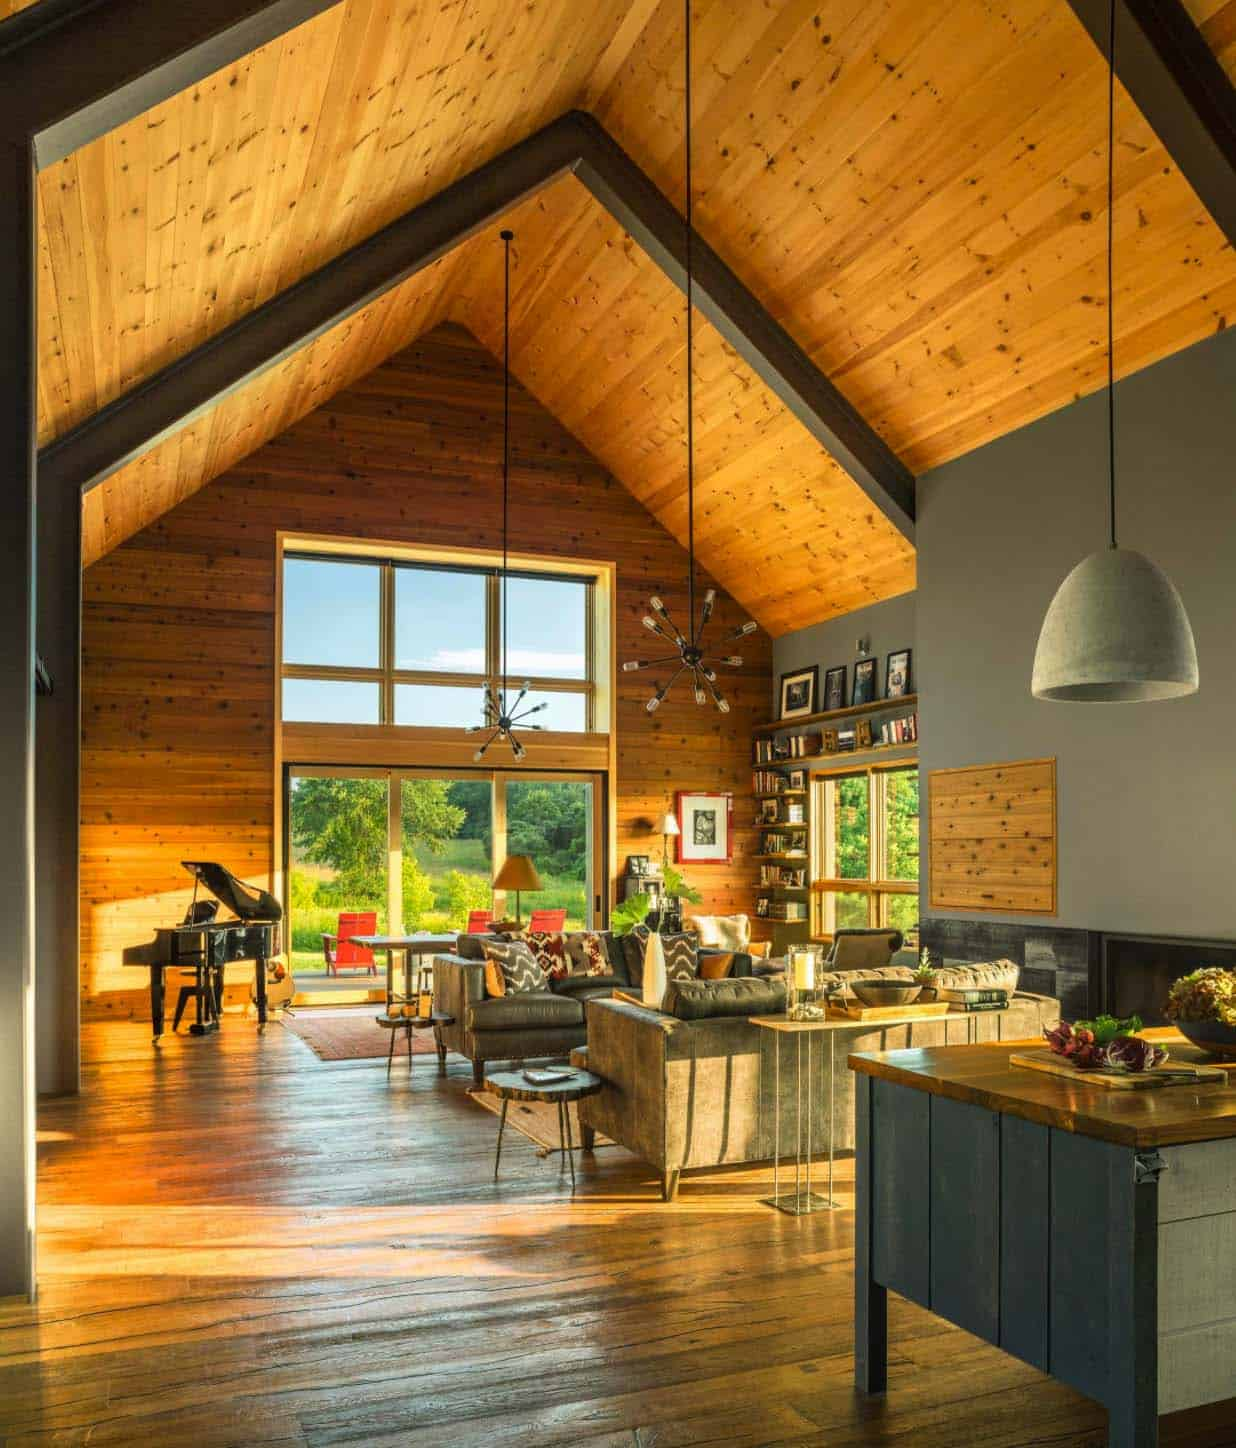 Contemporary Home Design: Small And Cozy Modern Barn House Getaway In Vermont